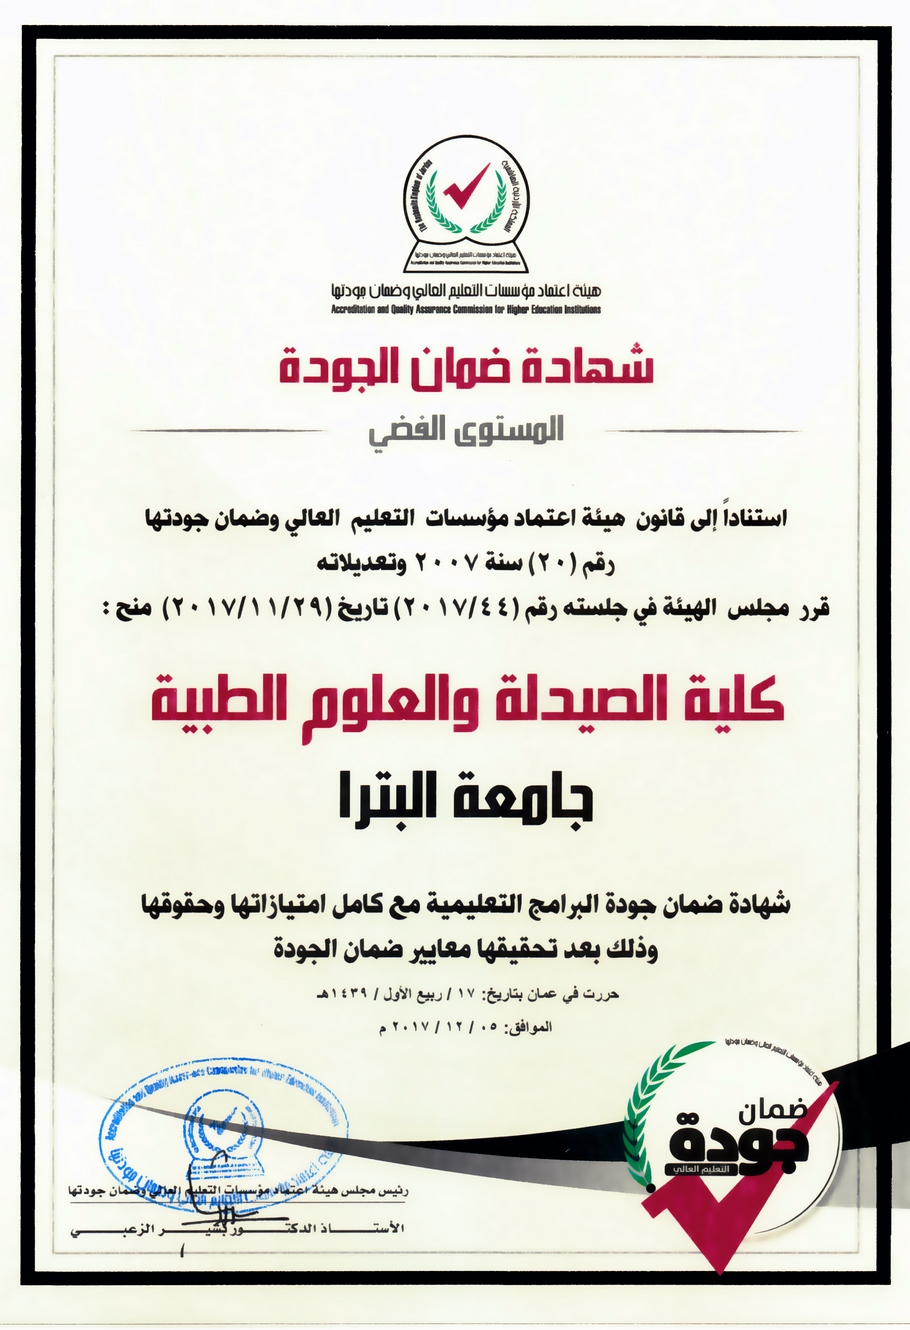 University Of Petra Heac Delivers Quality Assurance Certificate To